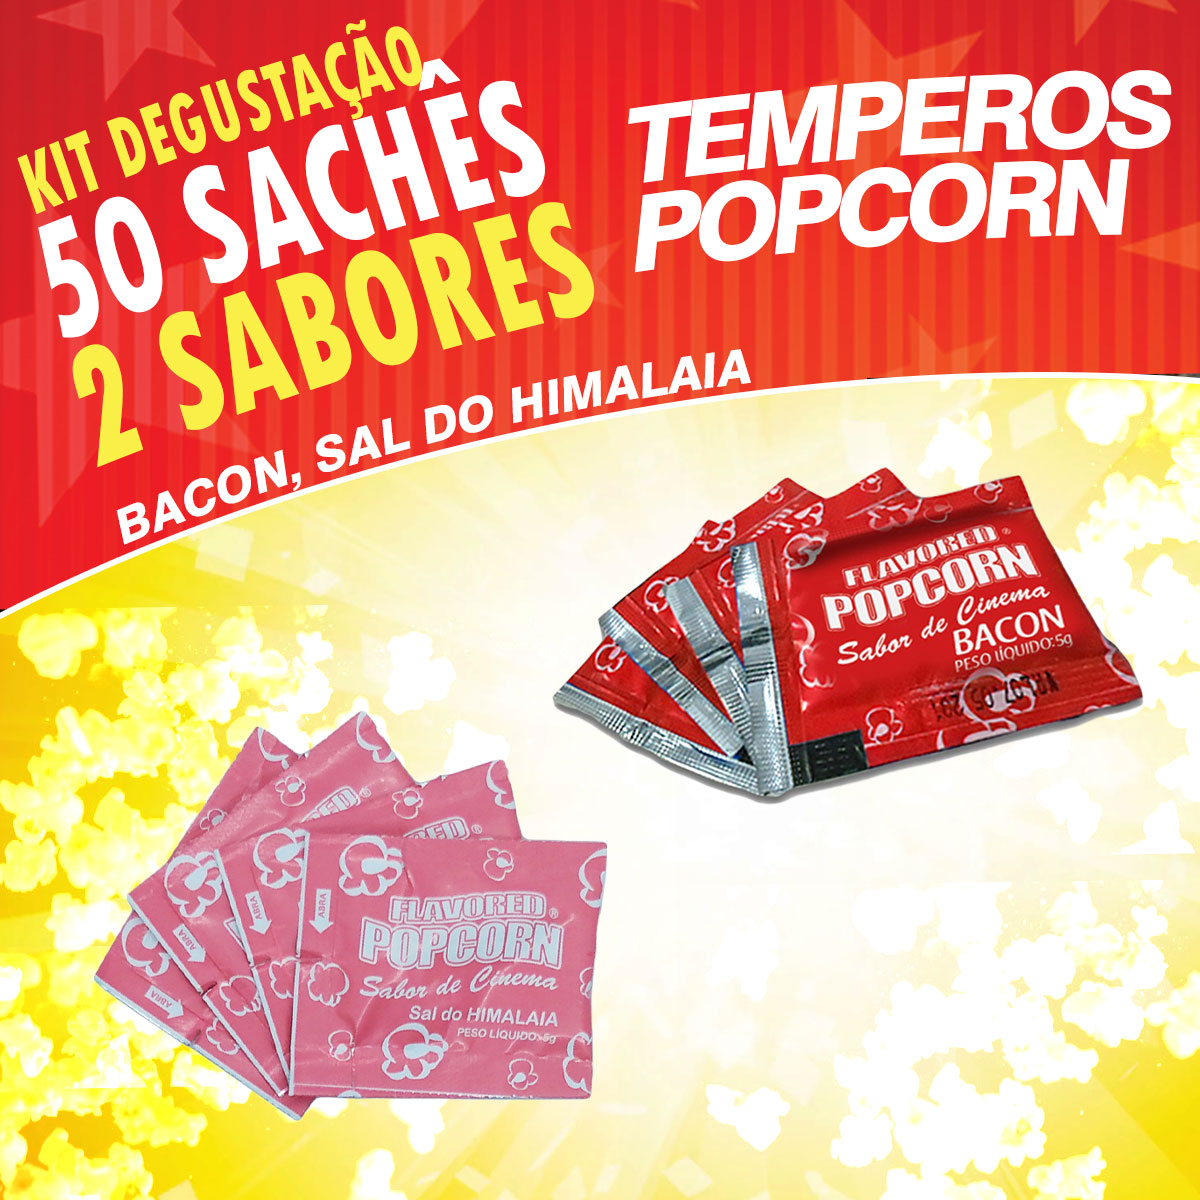 Temperos Popcorn 50 sachês. 25 Bacon e 25 Sal do Himalaia.